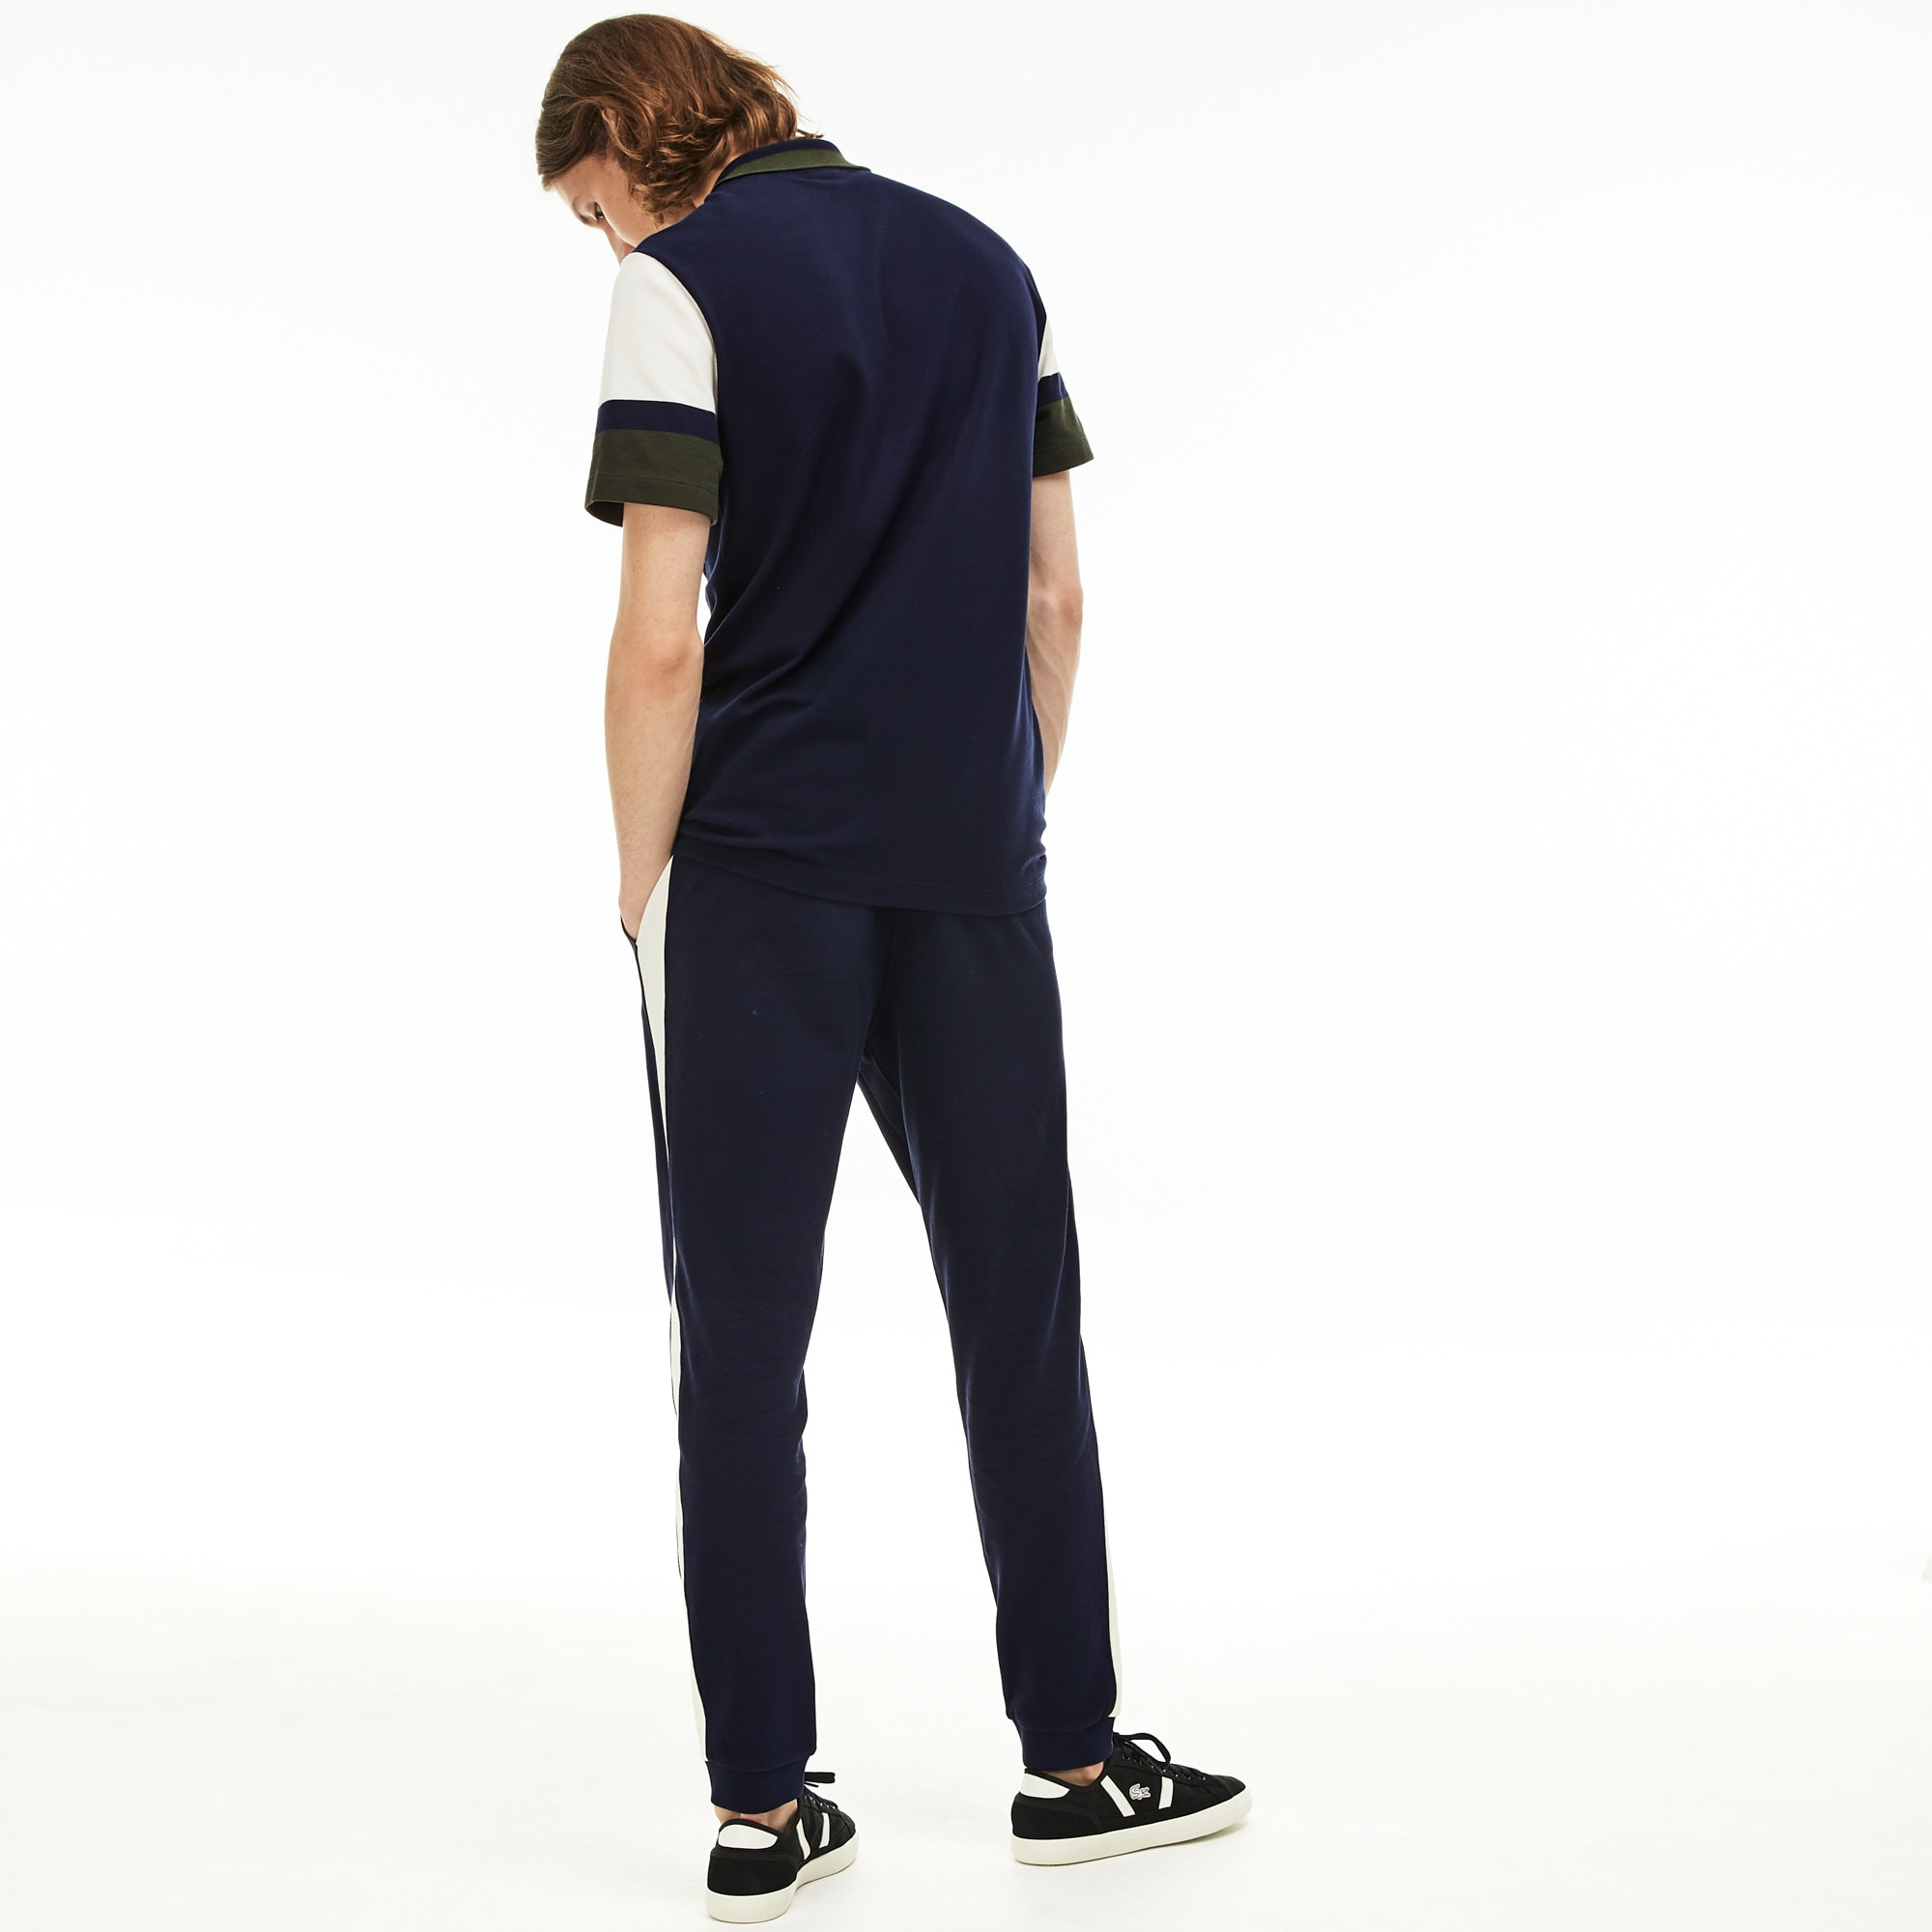 Men's Piqué Fleece Sweatpants